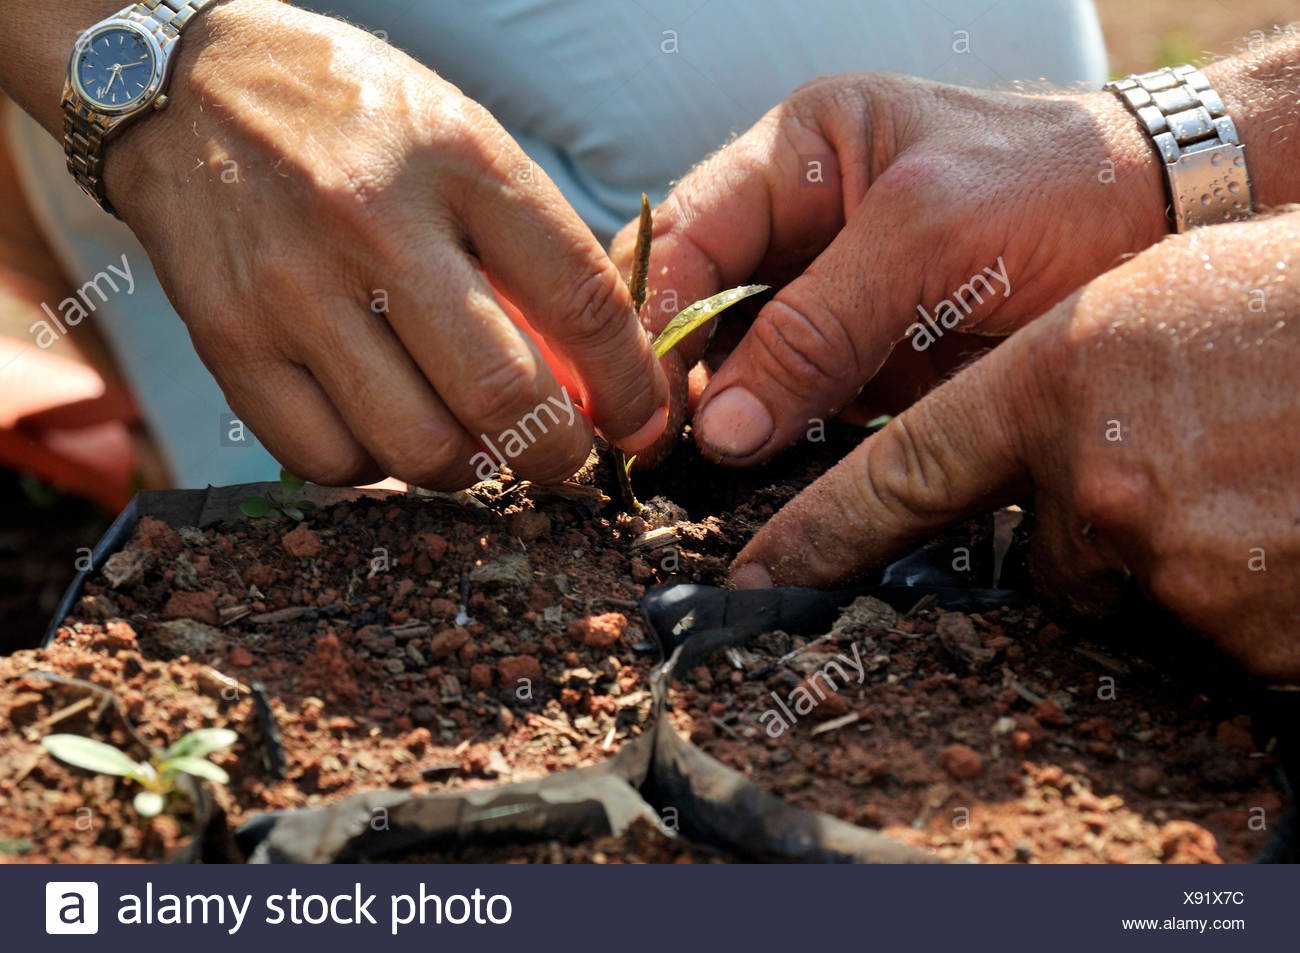 Rearing of seedlings for reforestation of previously cleared land in the Amazon rain forest, tree nursery co-operative of small - Stock Image